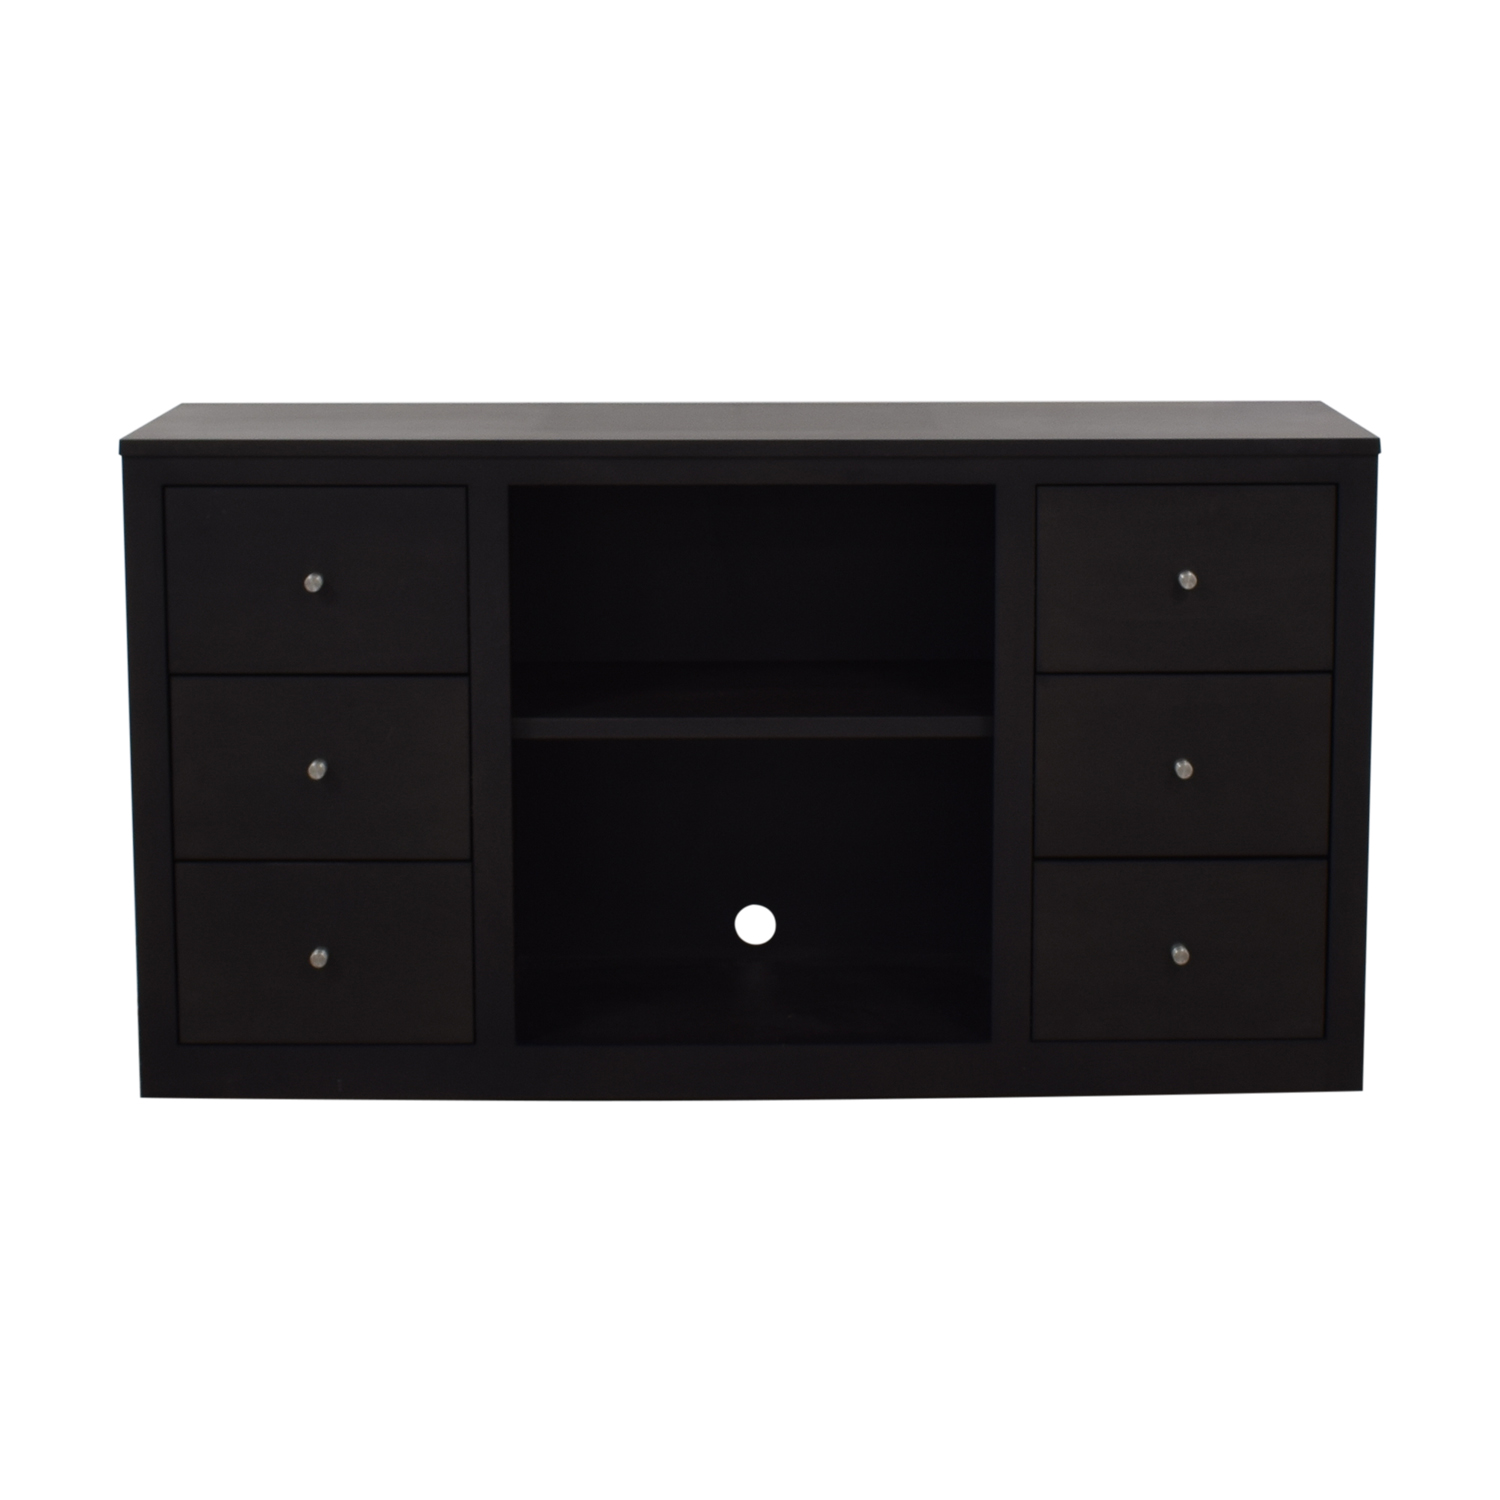 Room & Board Woodwind Maple With Charcoal Stain Media Cabinet / Storage